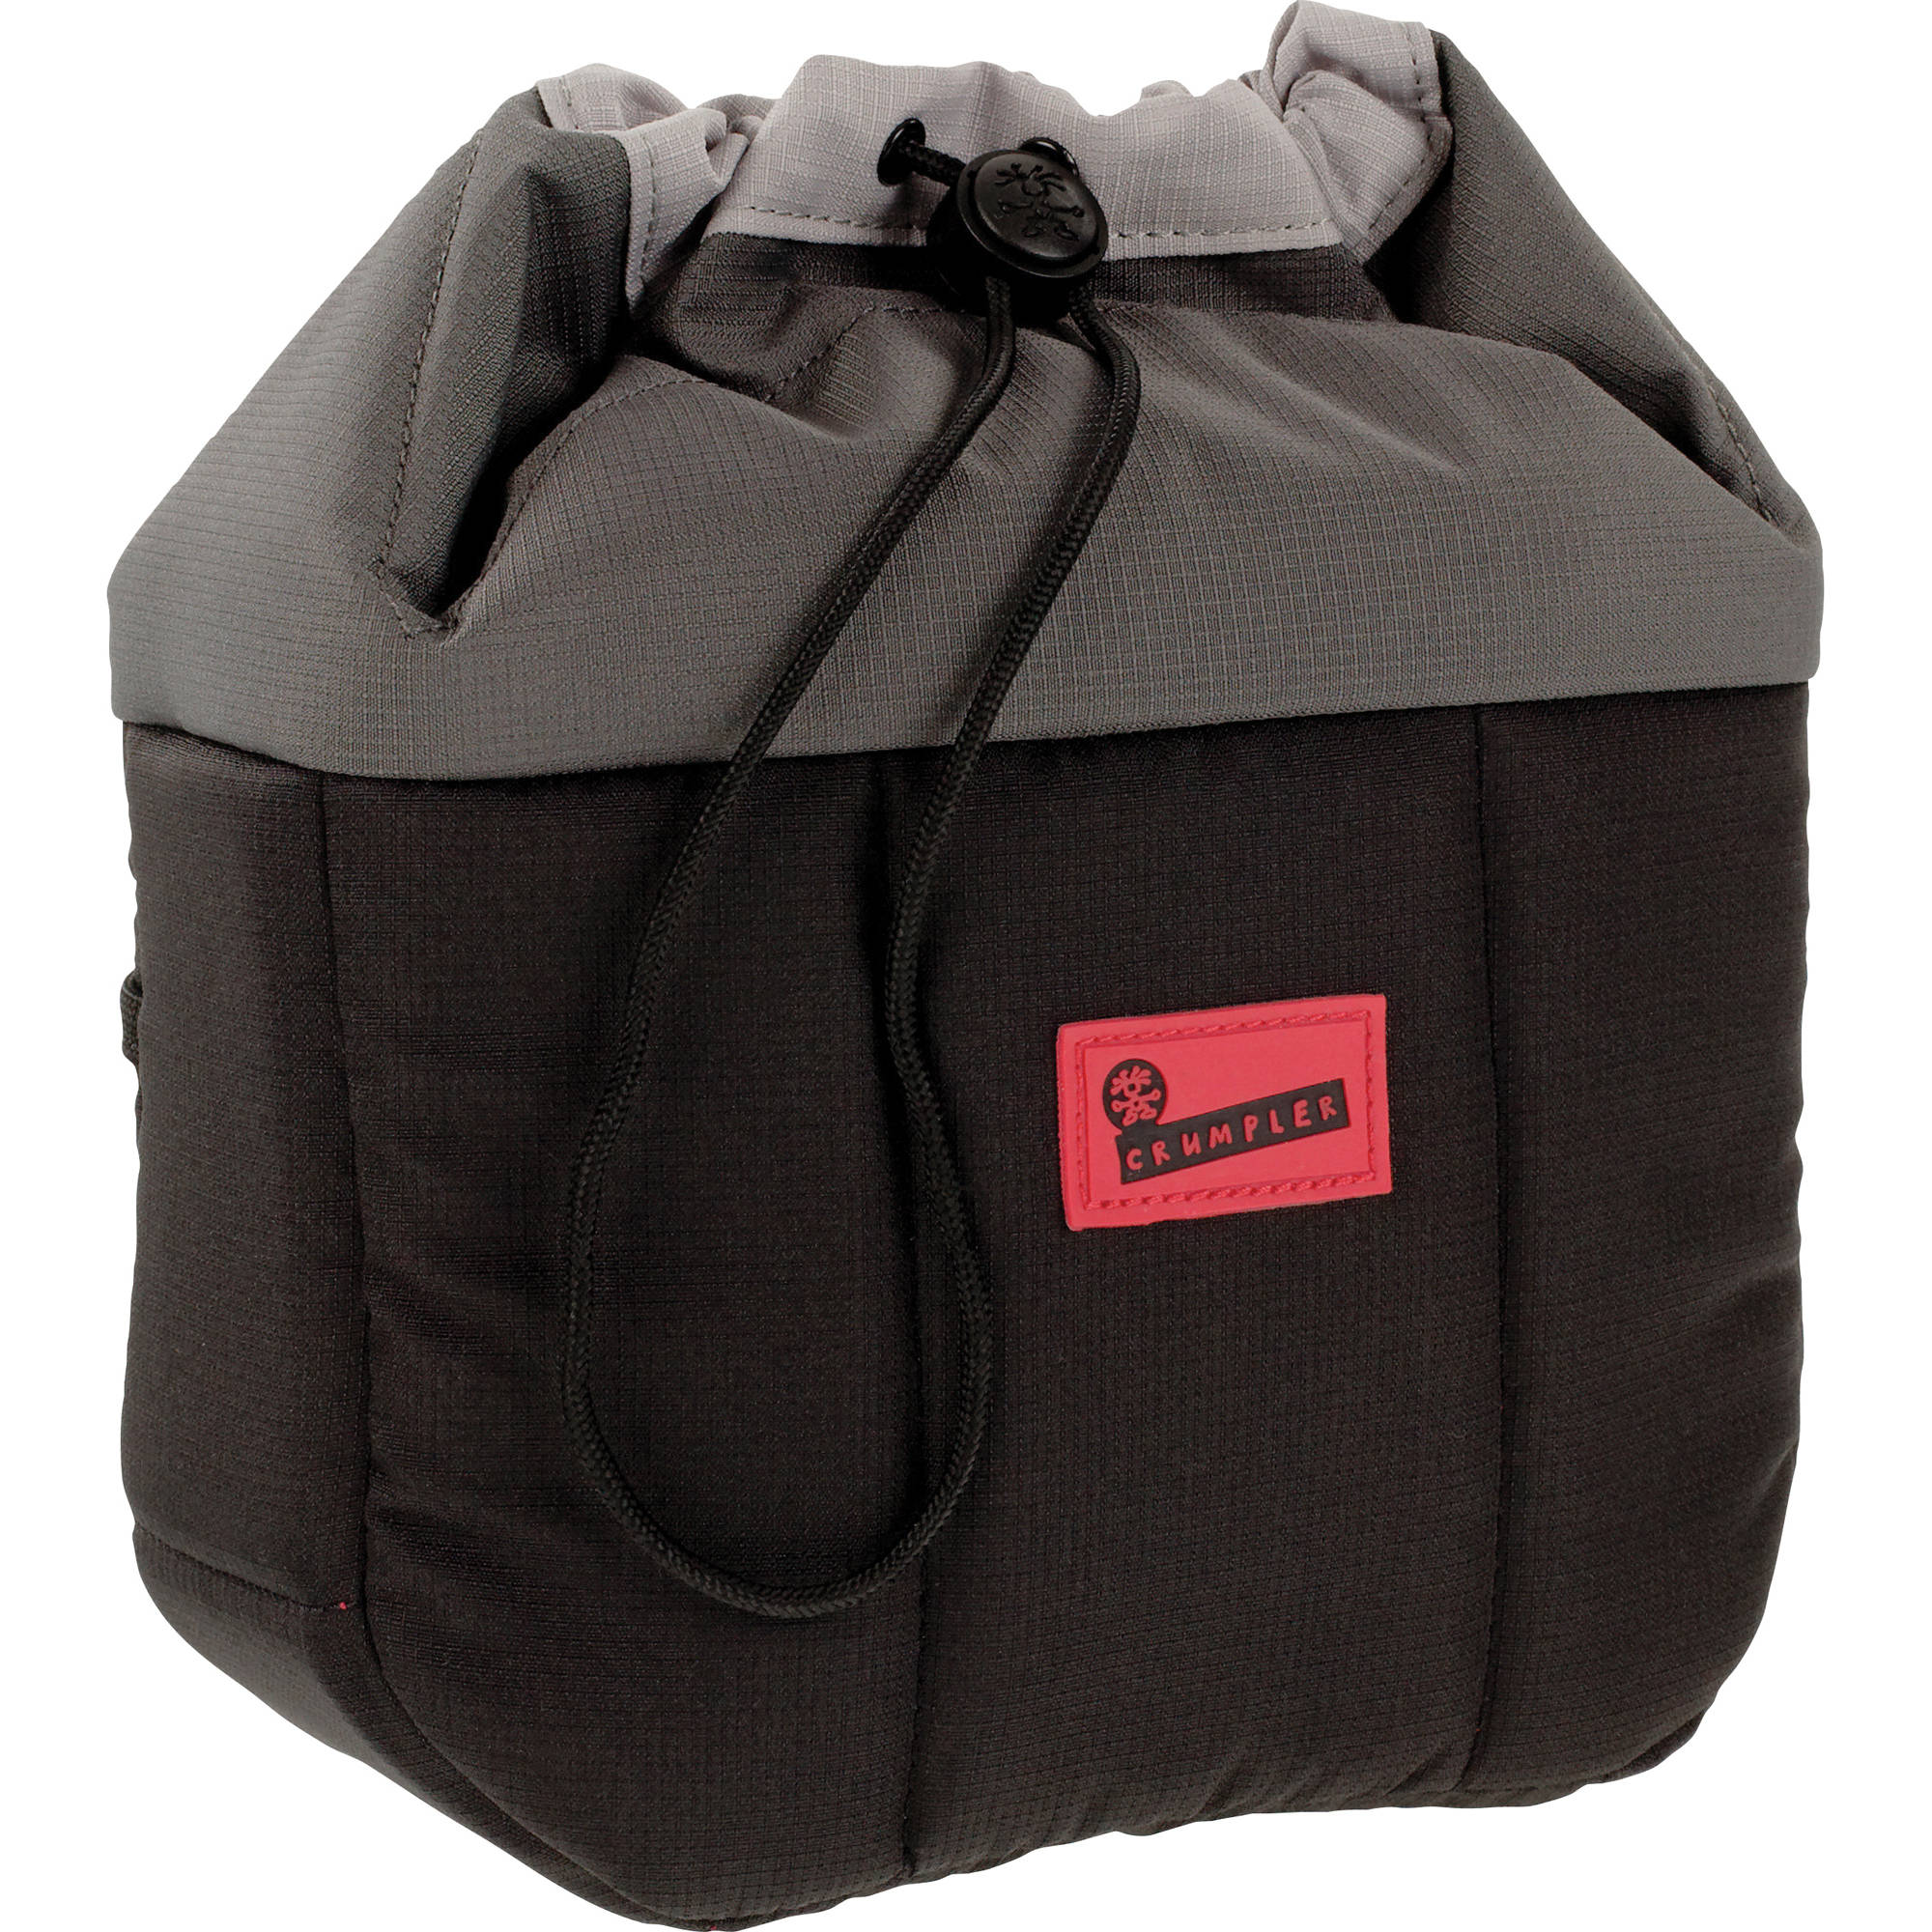 crumpler black personals Probably too small if you need your backpack to carry around a lot of personals, or carry your lunch,  the dark gray color was $10 cheaper than the black,.